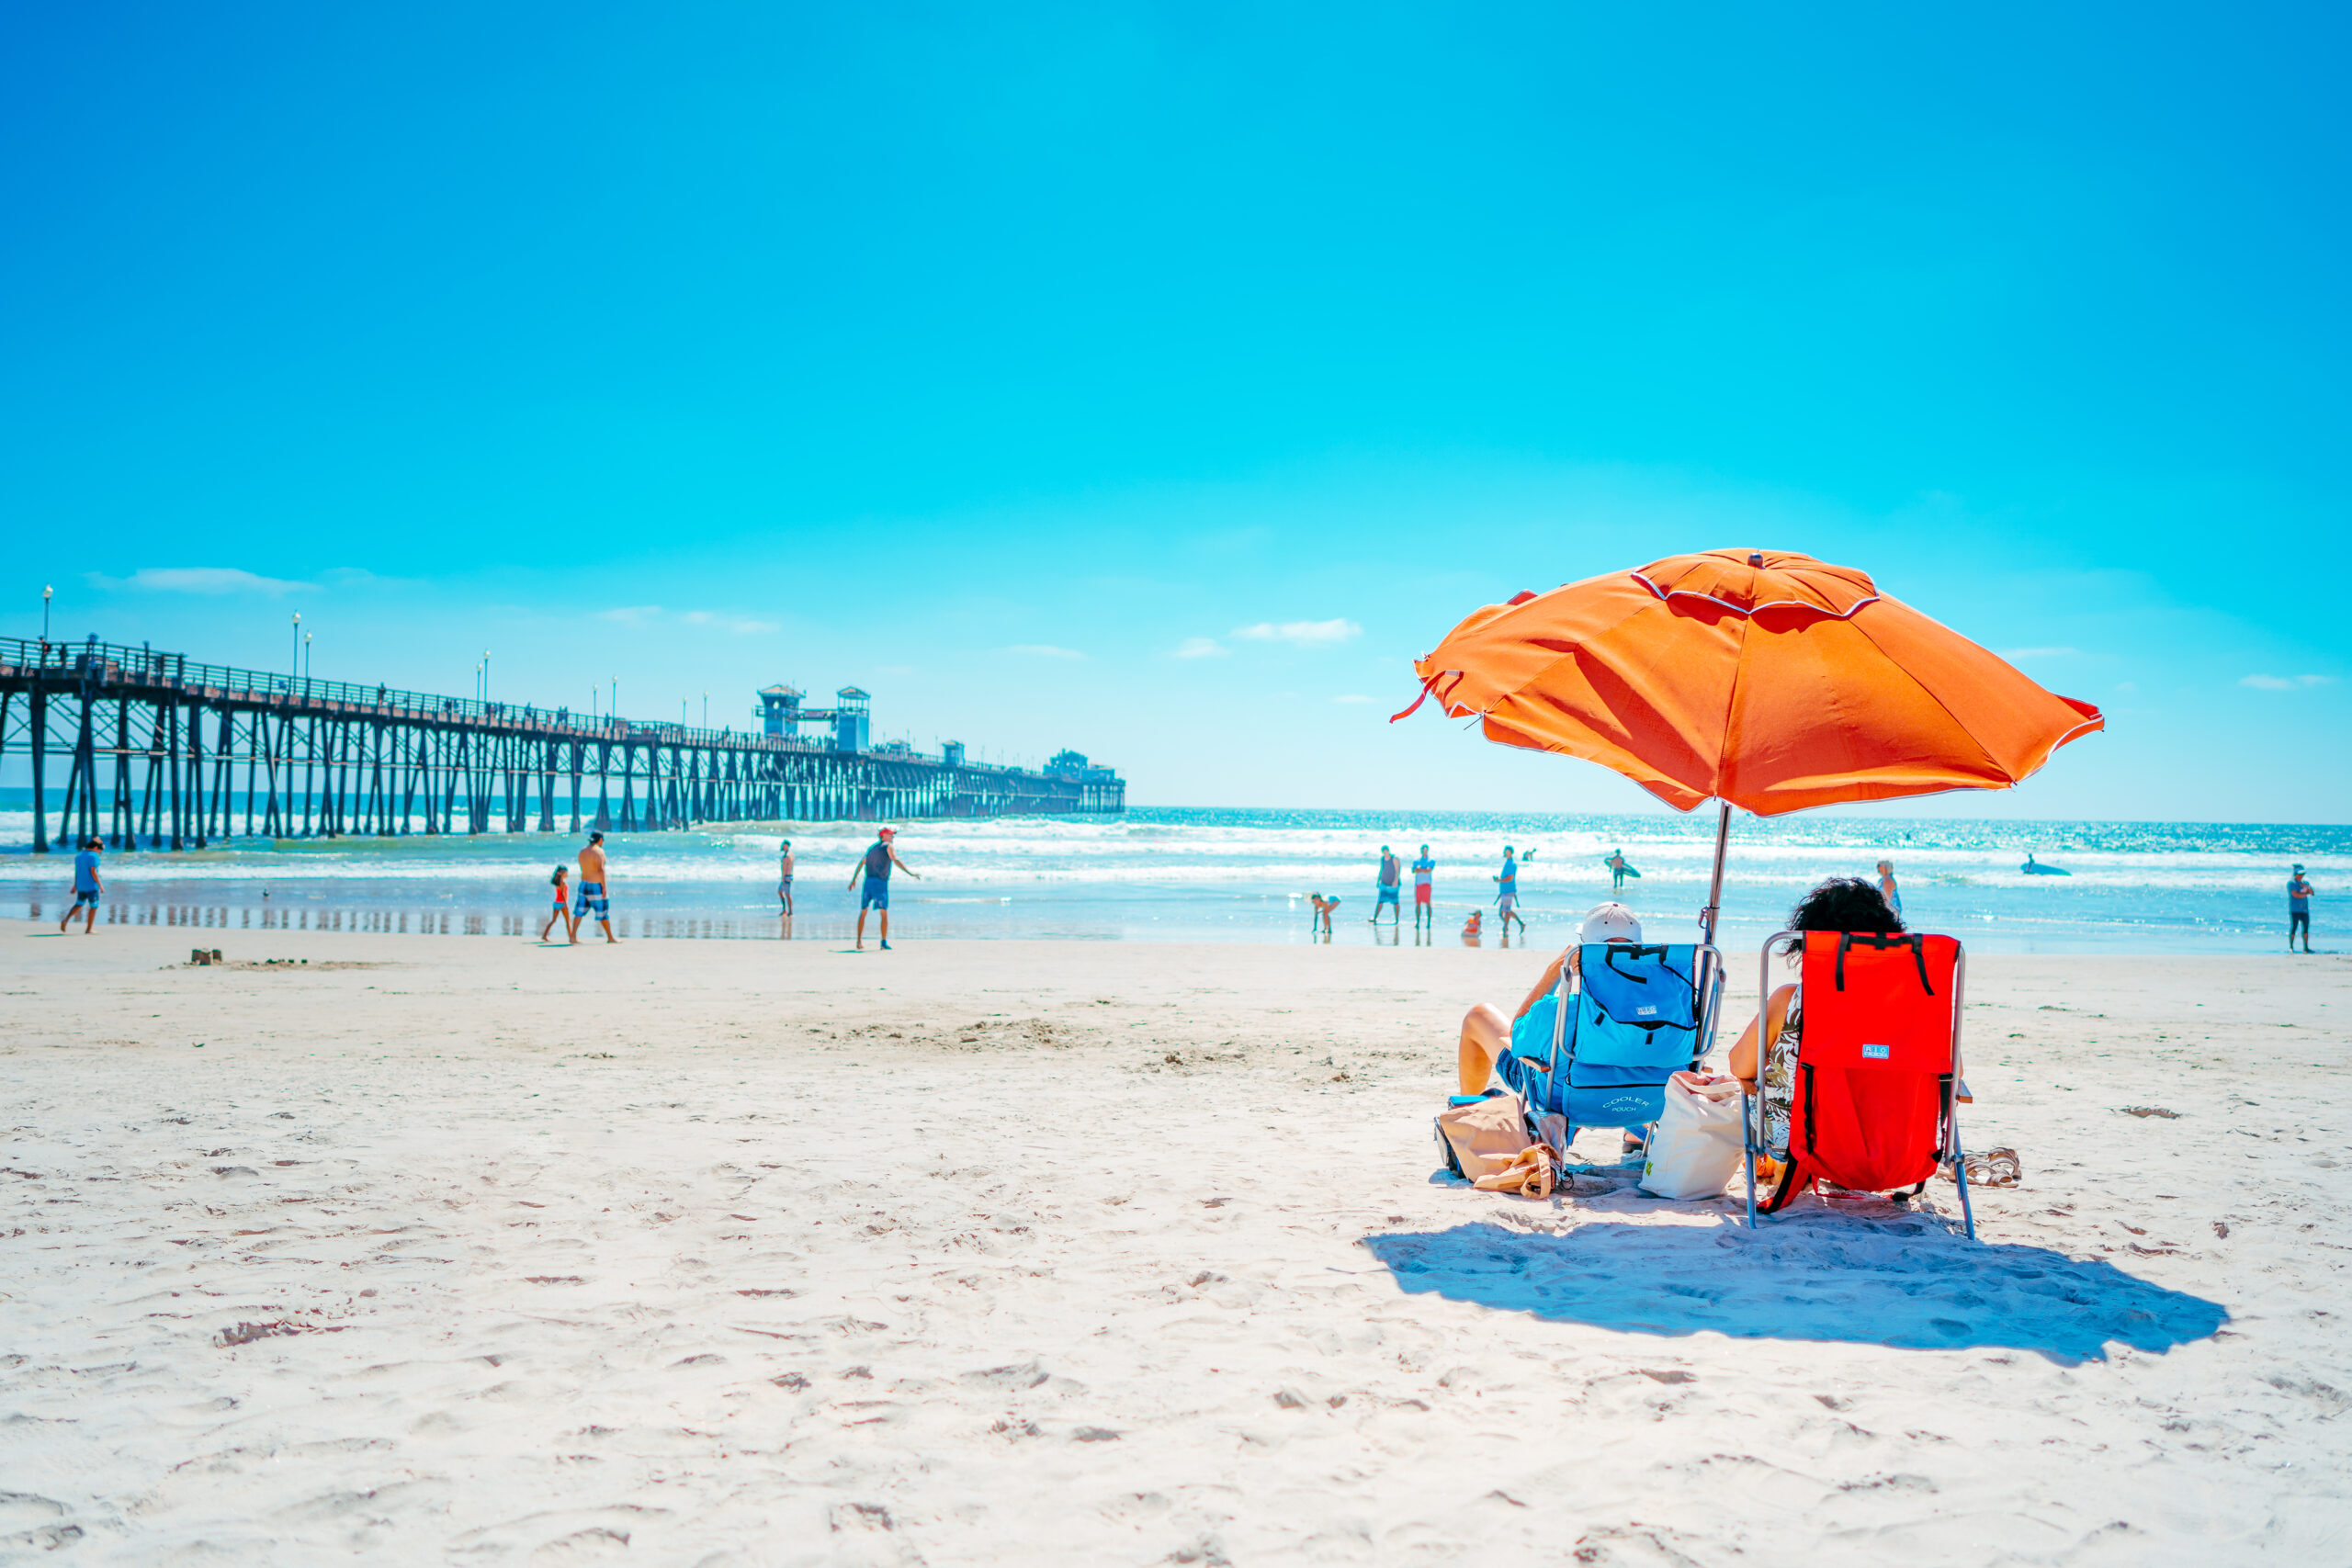 Couple with brightly colored beach chairs and umbrella enjoying the beach, one of the fun things to do in Oeanside CA